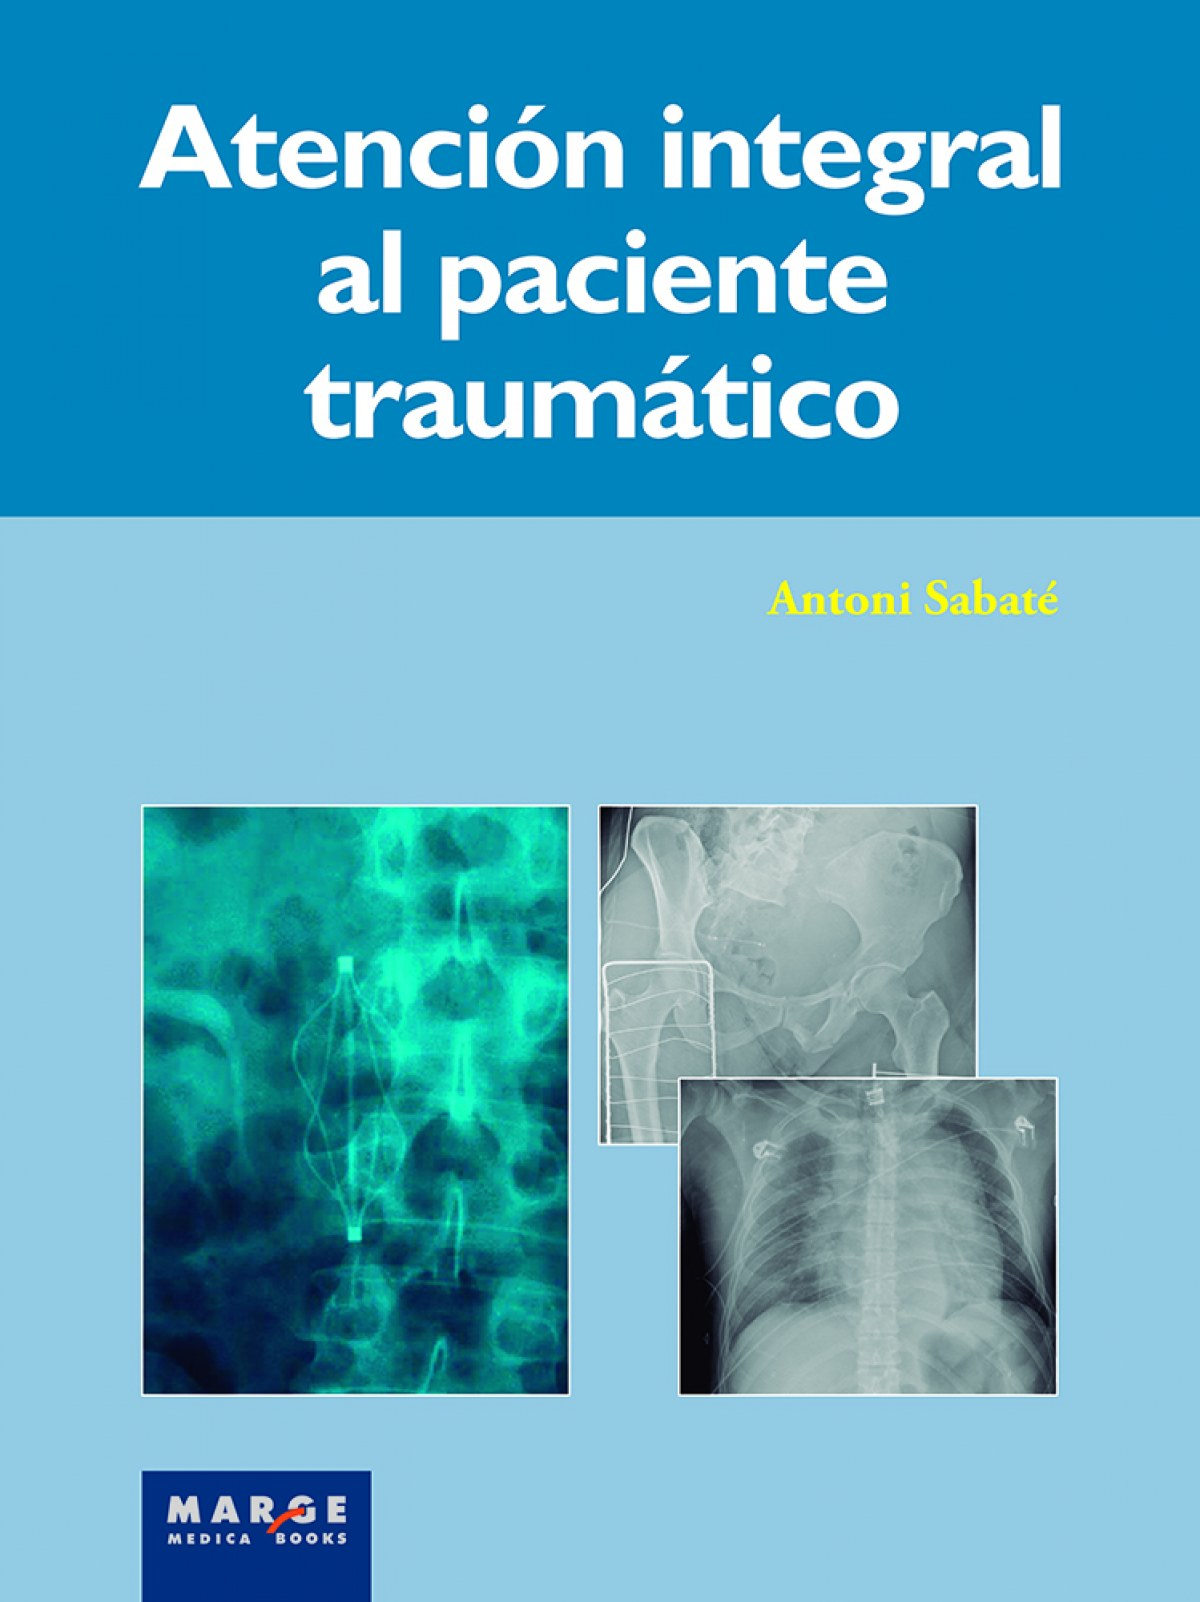 ATENCION INTEGRAL DEL PACIENTE TRAUMATICO